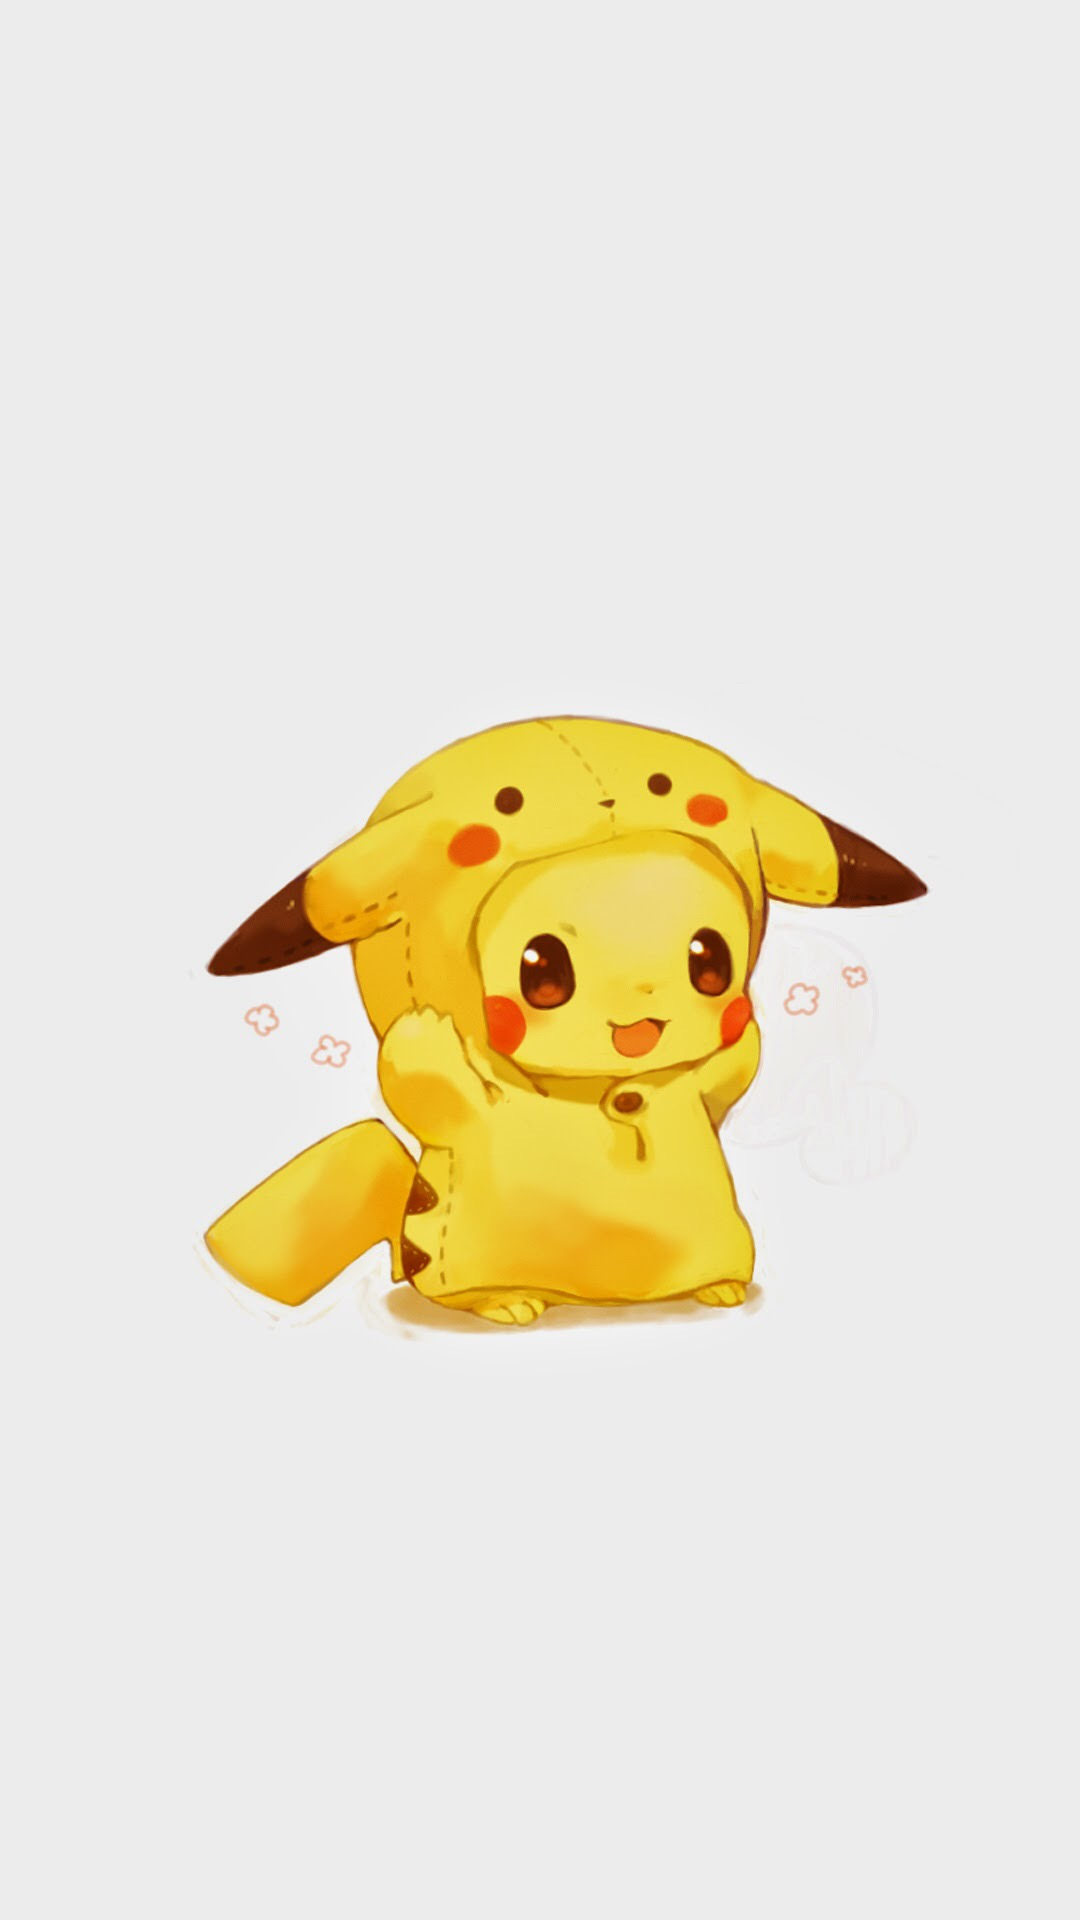 Tap-image-for-more-funny-cute-Pikachu-Pikachu-mobile-for-iPhone-s-c-wallpaper-wp38010741